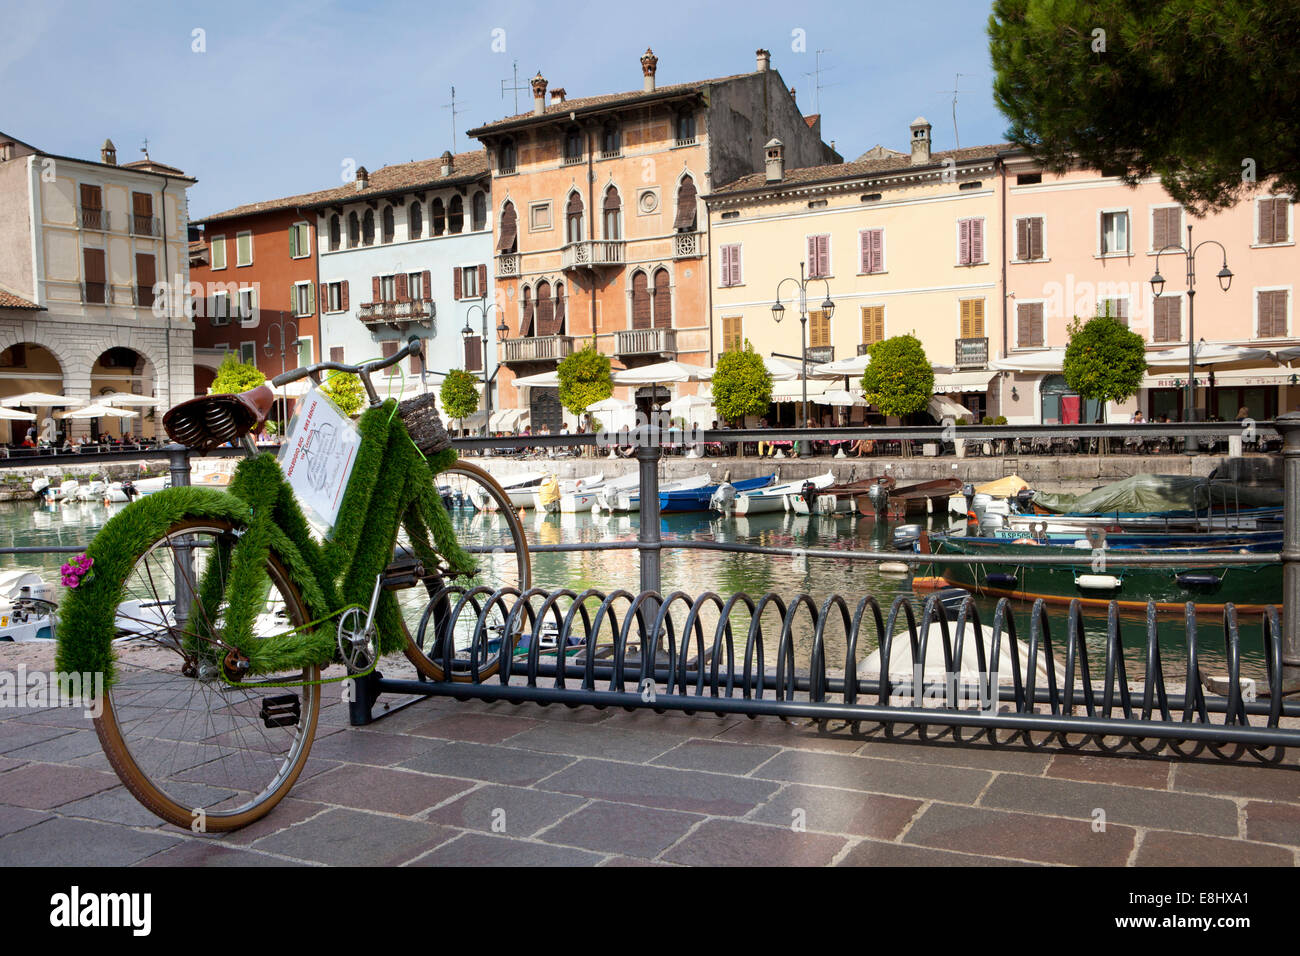 Desenzano del Garda is a town and comune in the province of Brescia, in Lombardy, Italy, on the southwestern shore Stock Photo